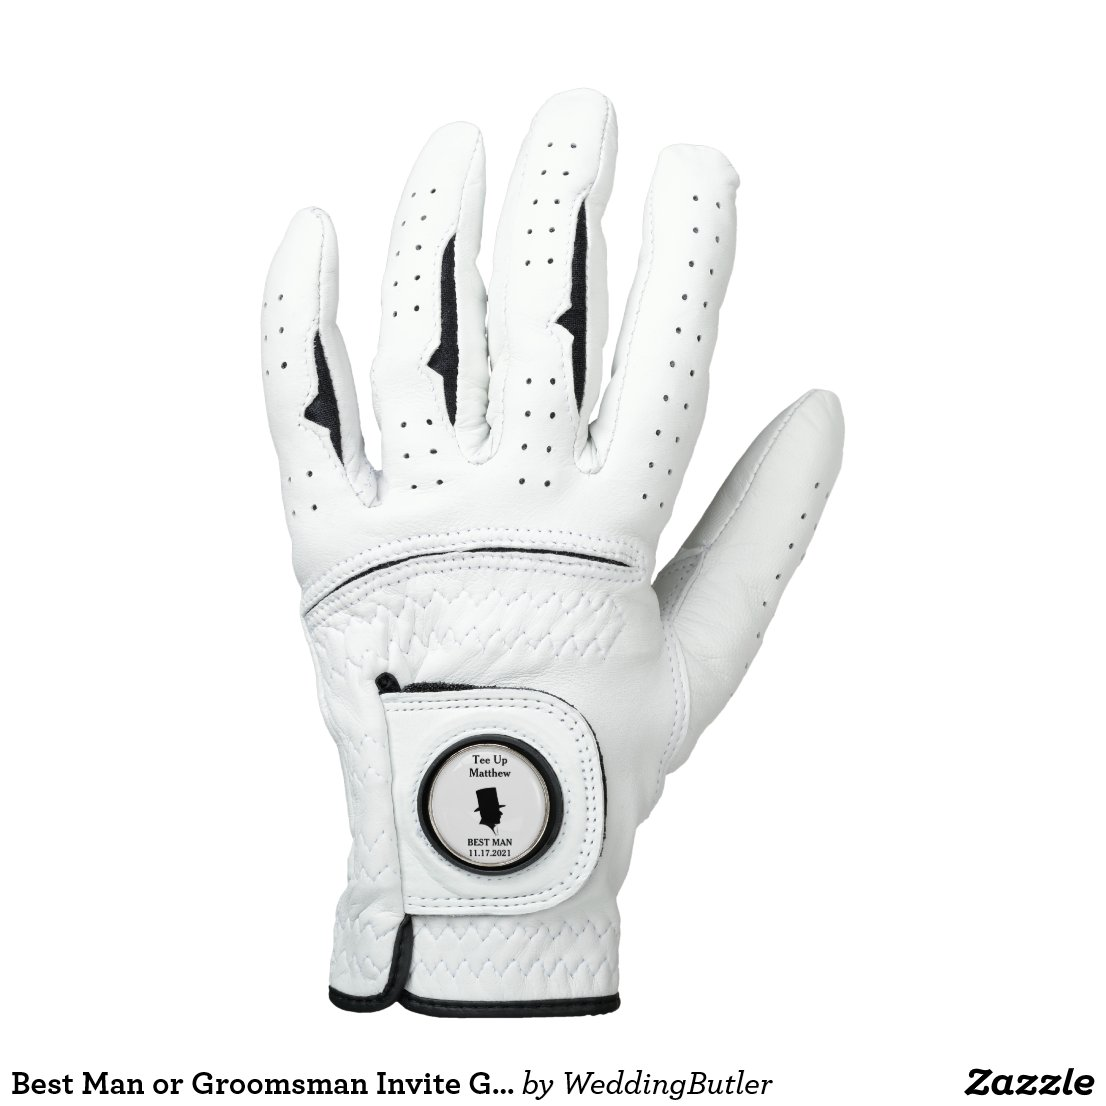 Best Man or Groomsman Invite Golf Glove